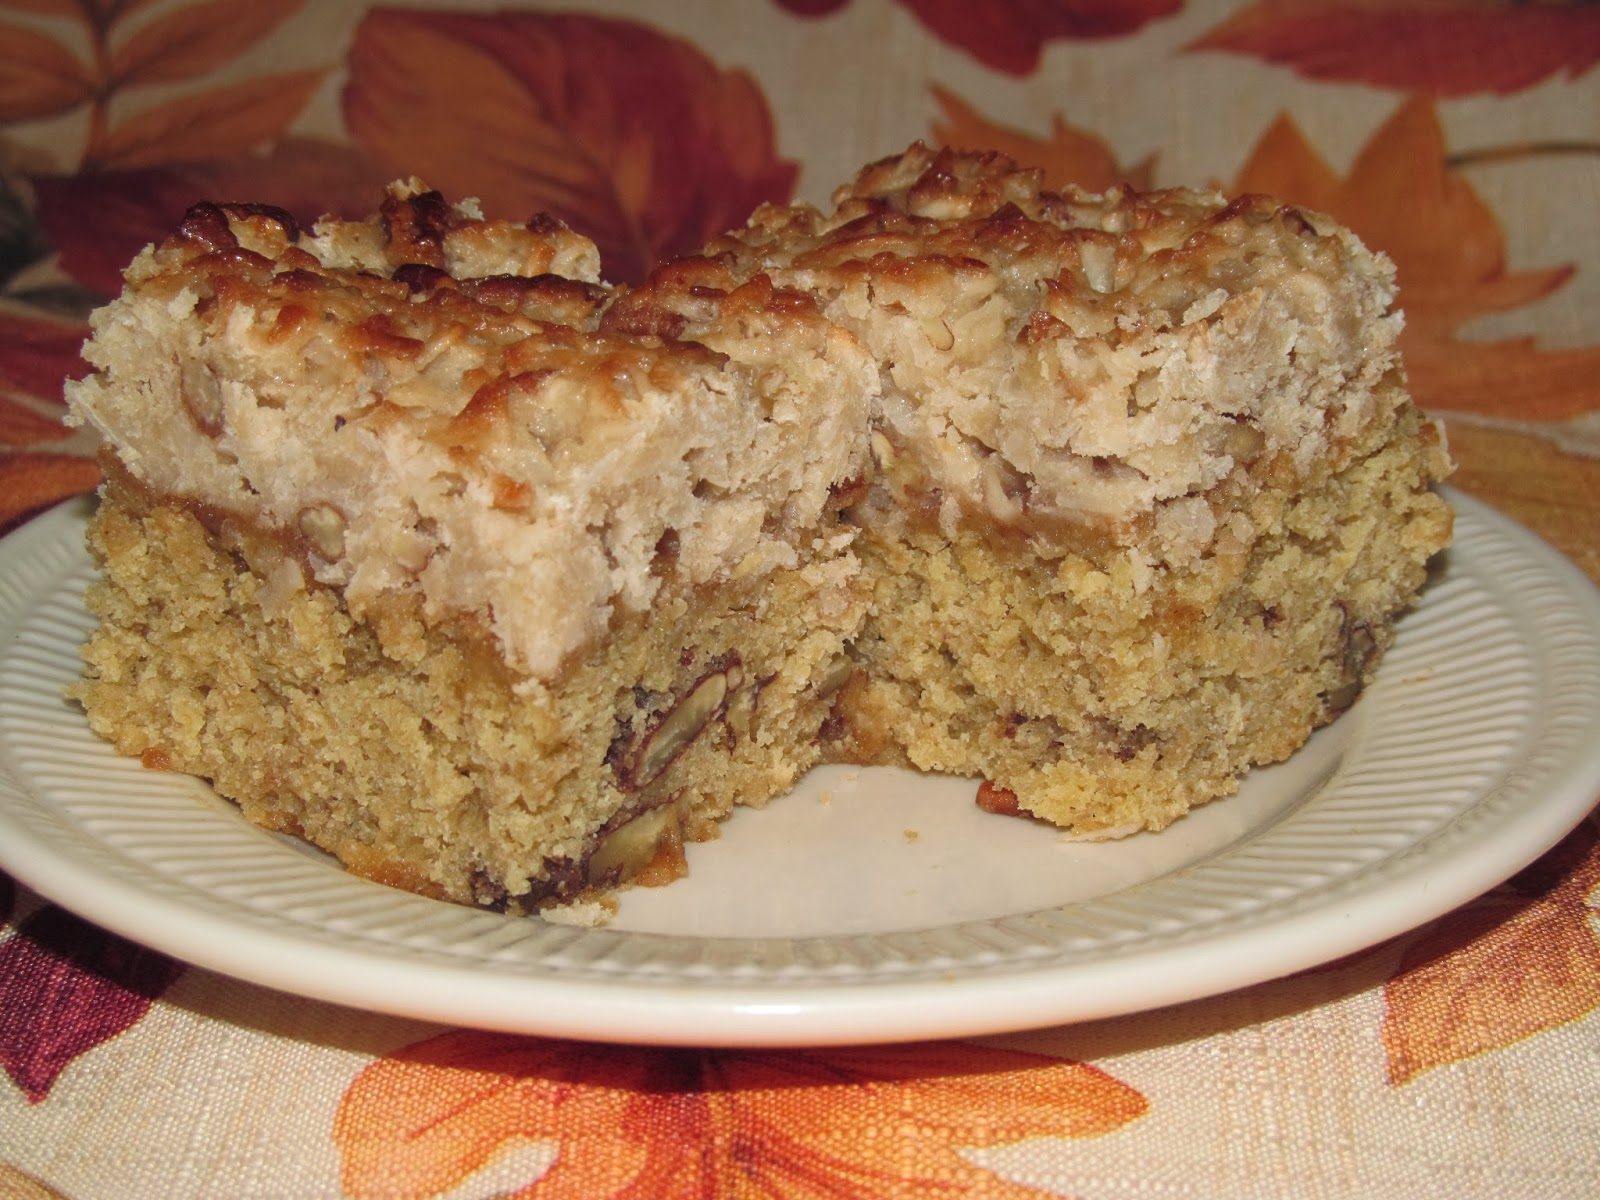 Home Joys: Flo's Cakes - Walnut Orange Coffee Cake